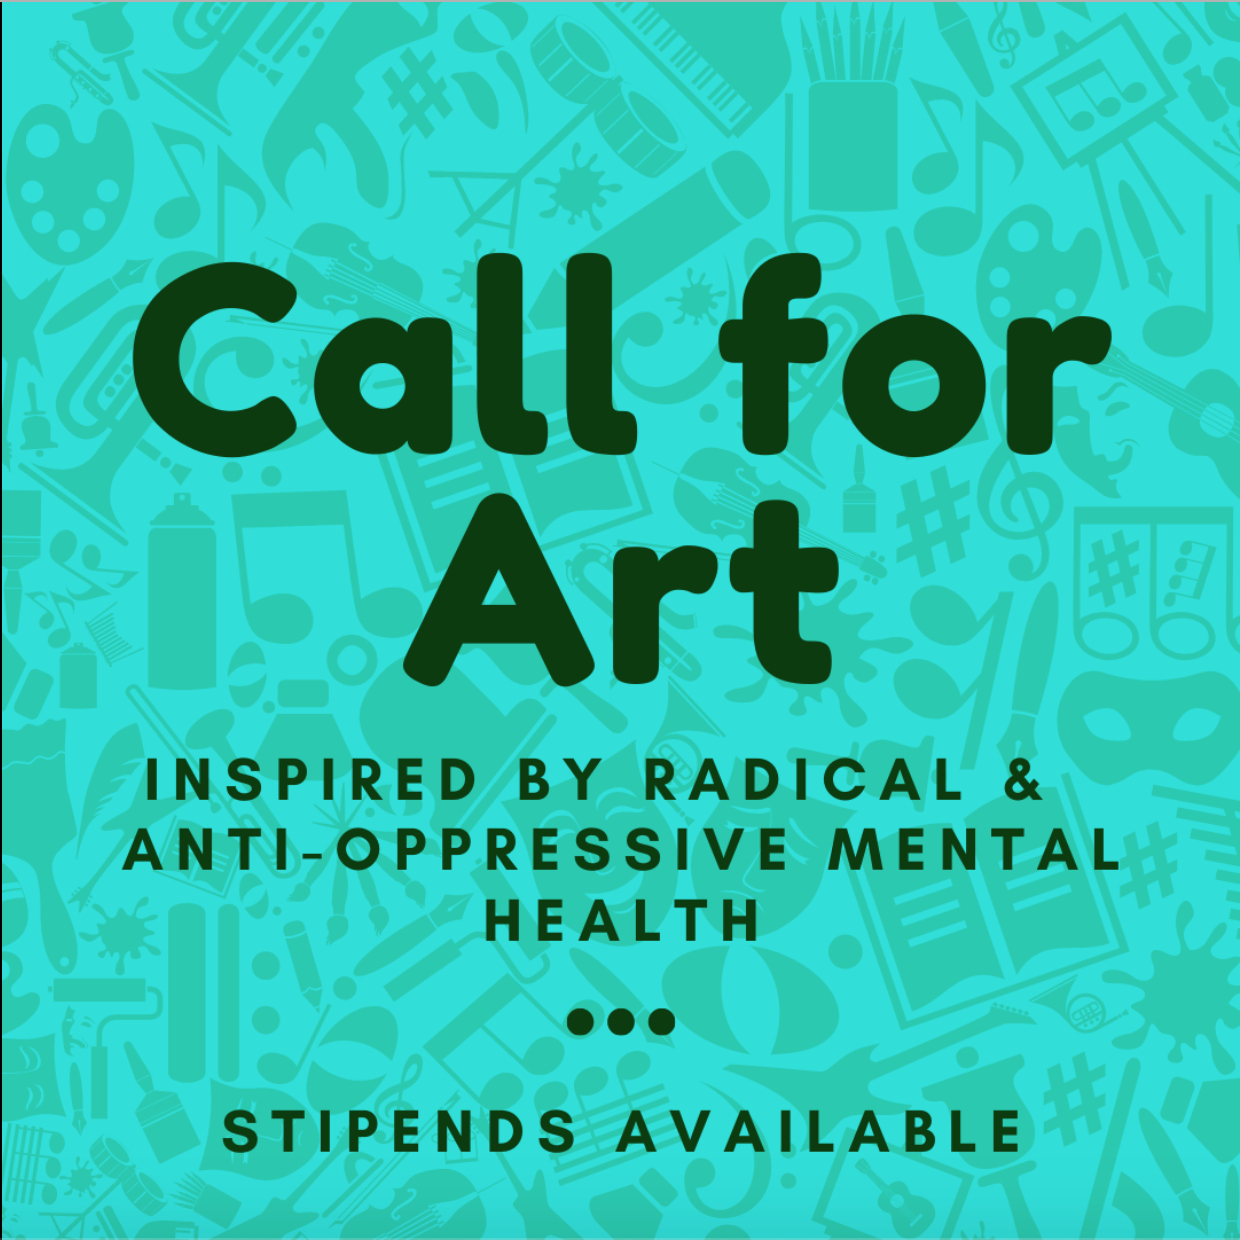 """Images that reads """"Call for Art. Inspired by Radical and Anti-Oppressive Mental Health. Stipends Available."""""""